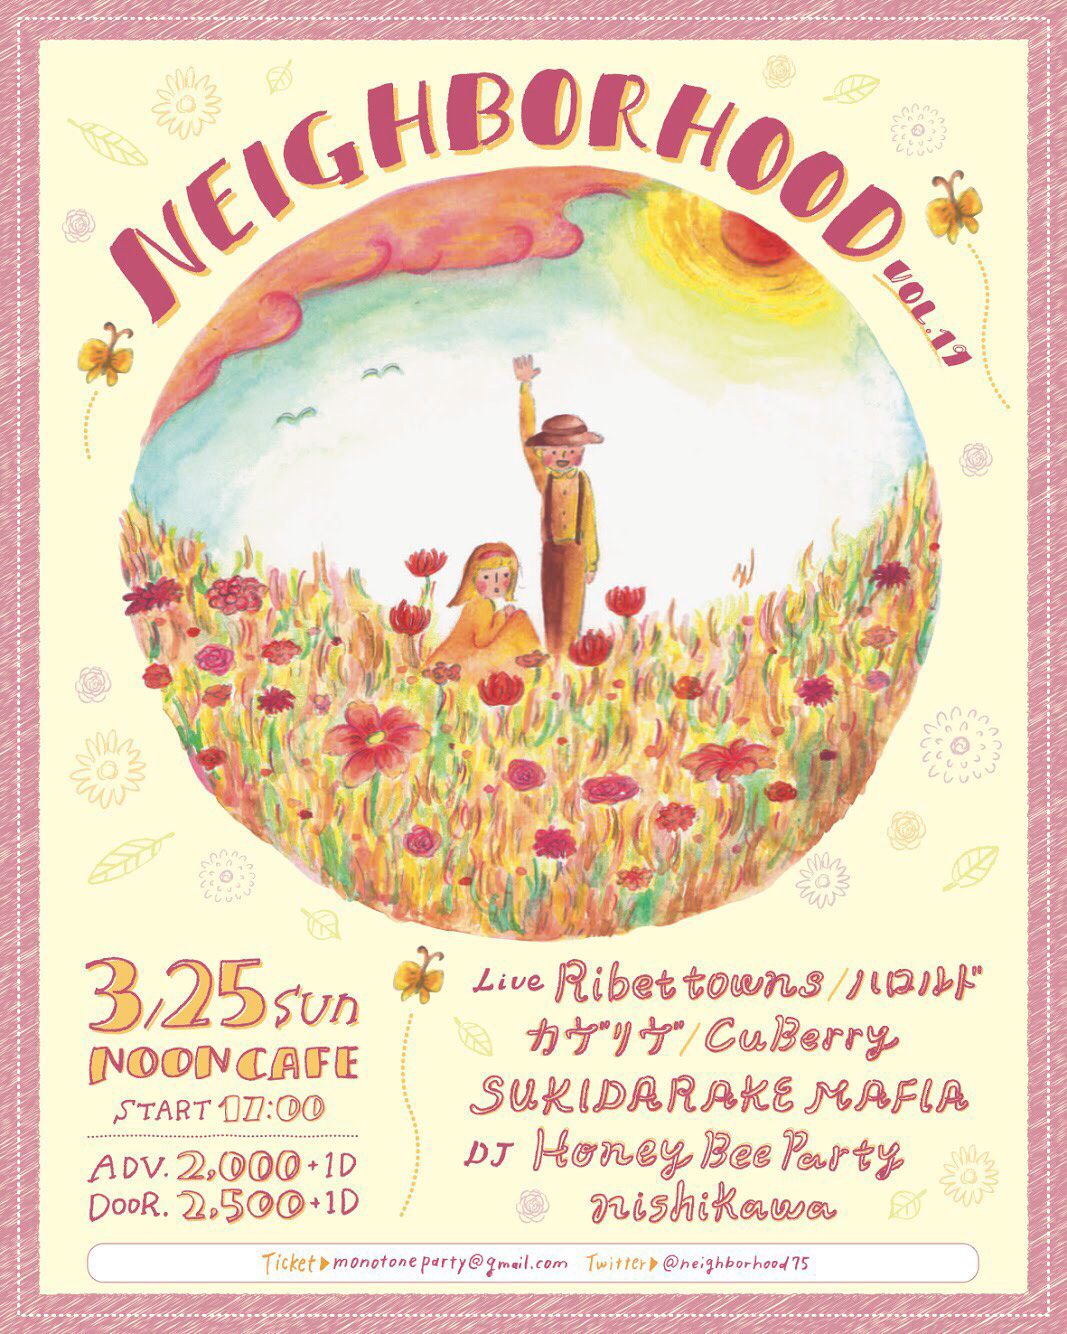 2018/03/25 NEIGHBORHOOD vol.19